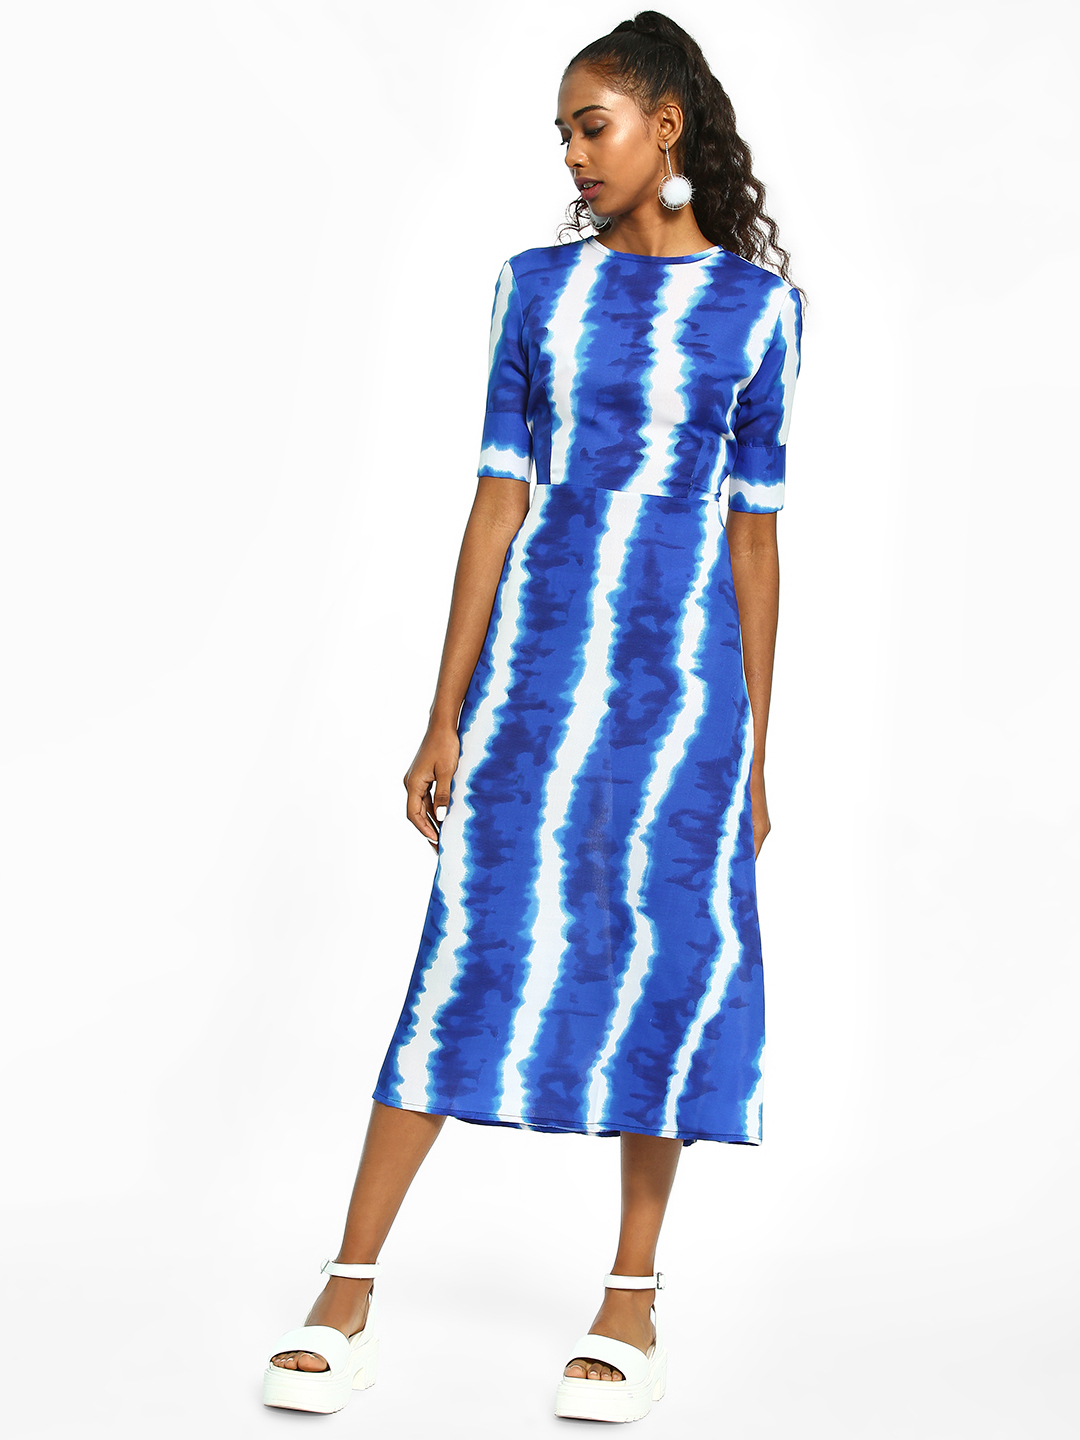 Closet Drama Multi Tie-Dye Back Cut-Out Midi Dress 1